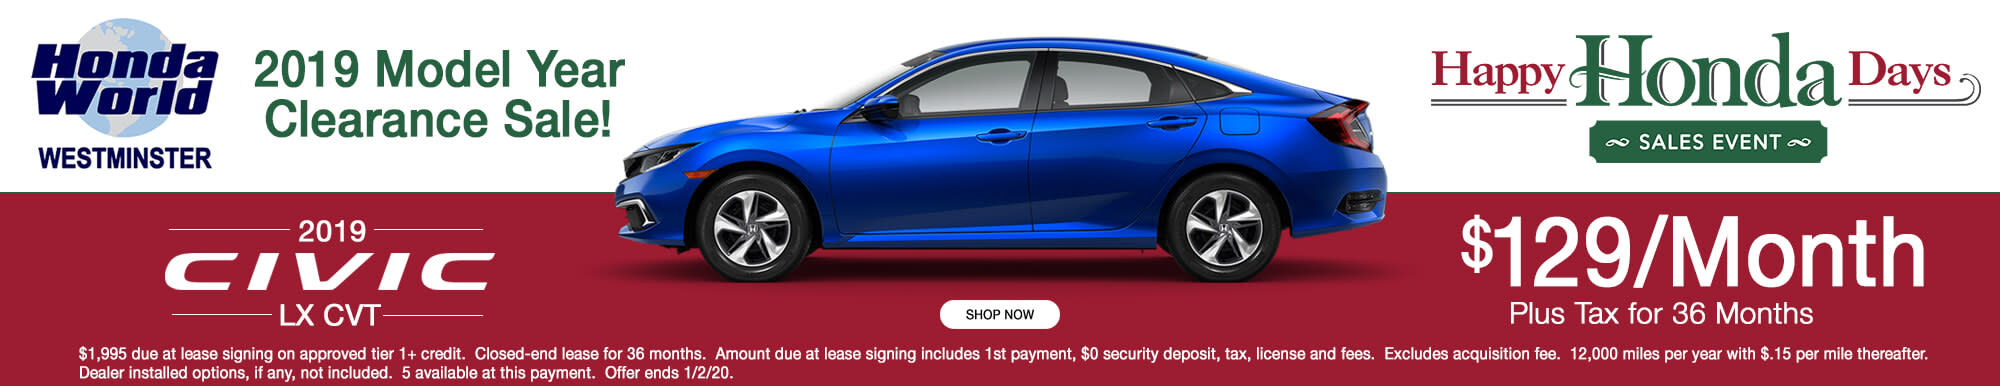 2019 Honda Civic LX Lease Offer $129 a month